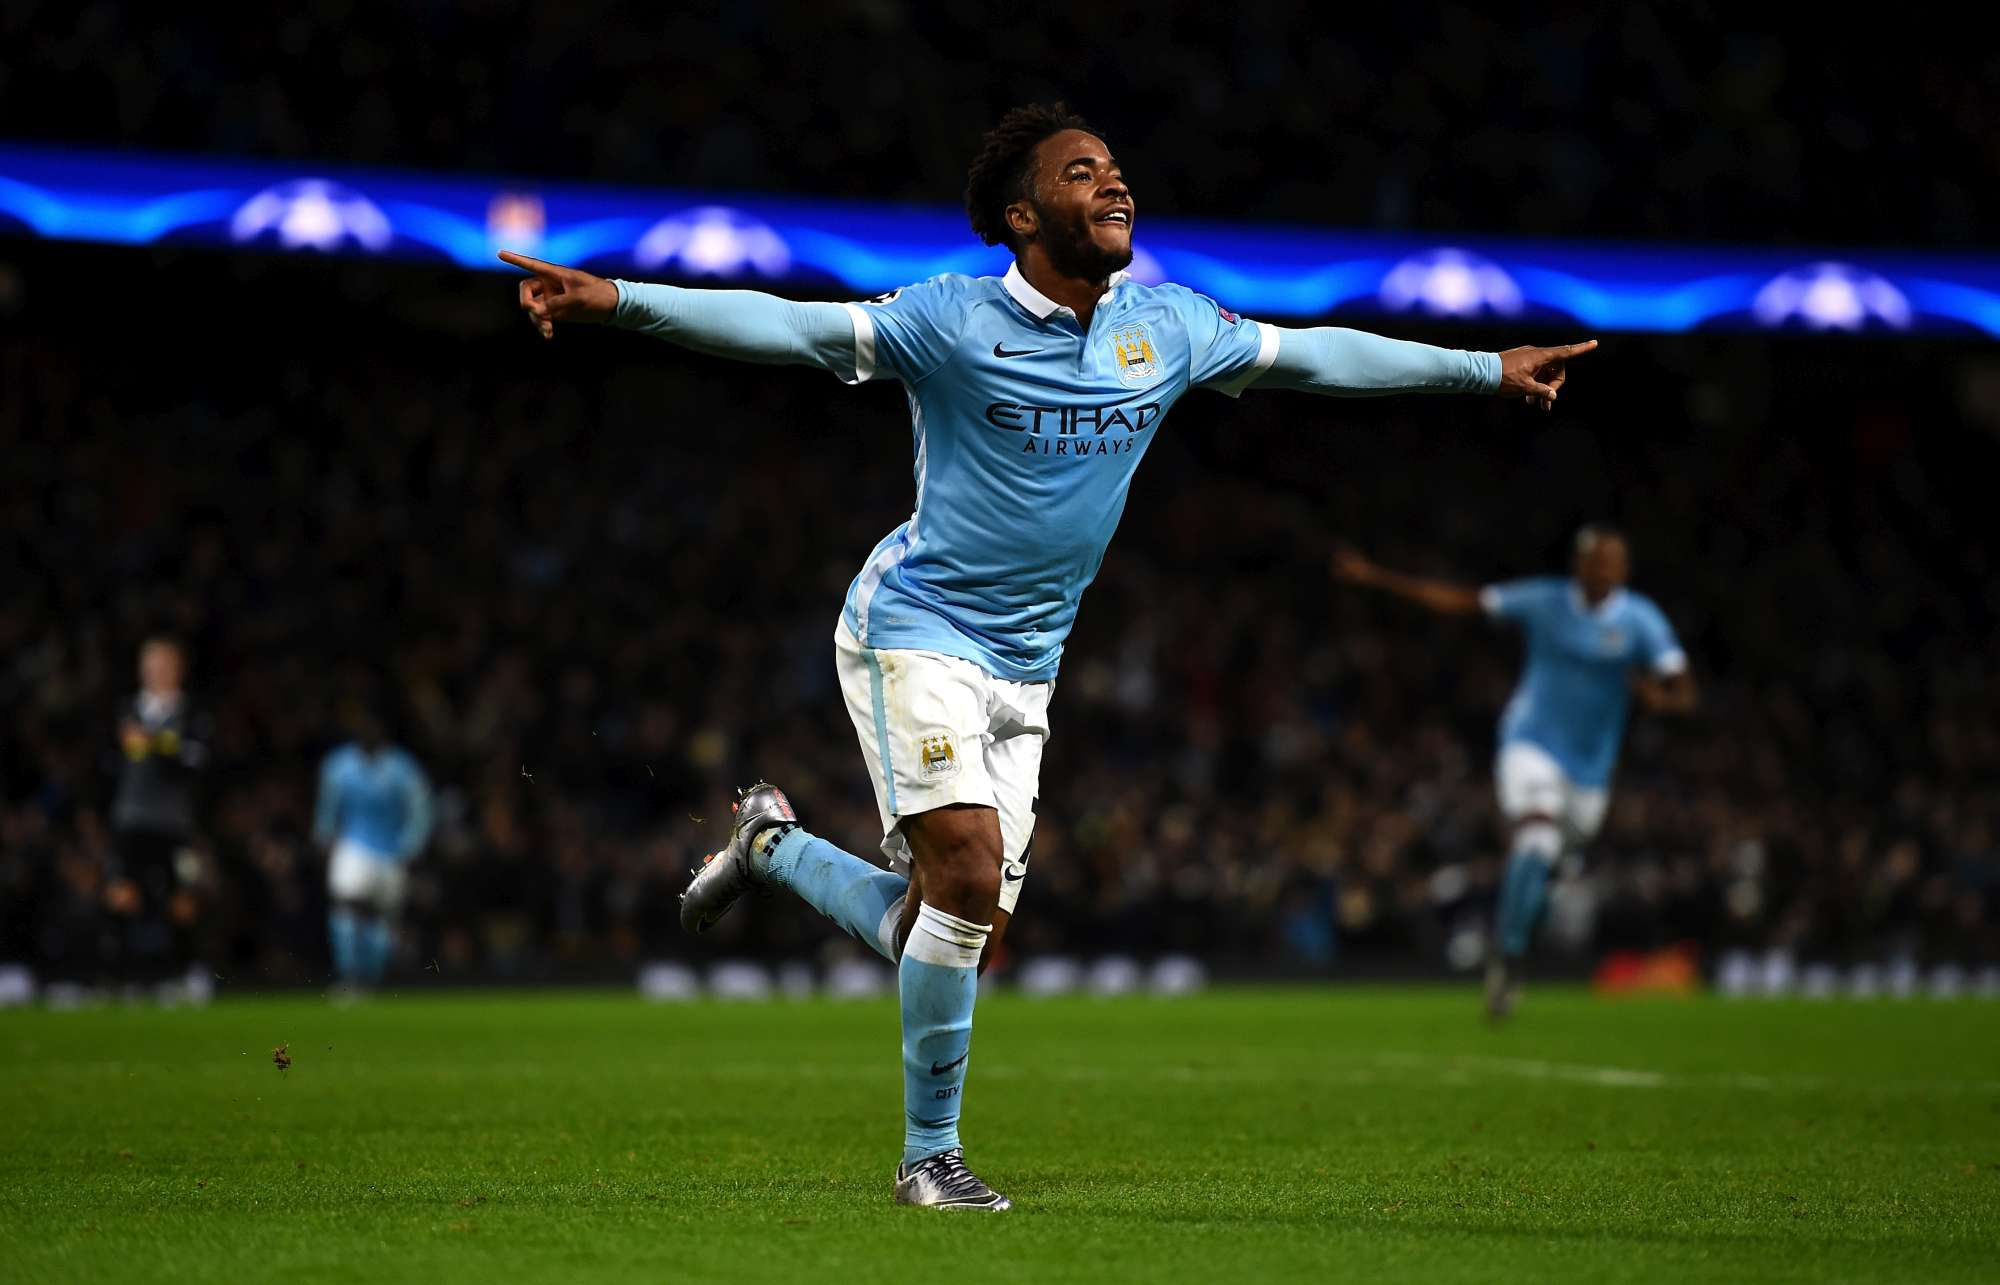 Raheem Sterling, arrivato in estate al City per 68 milioni di euro